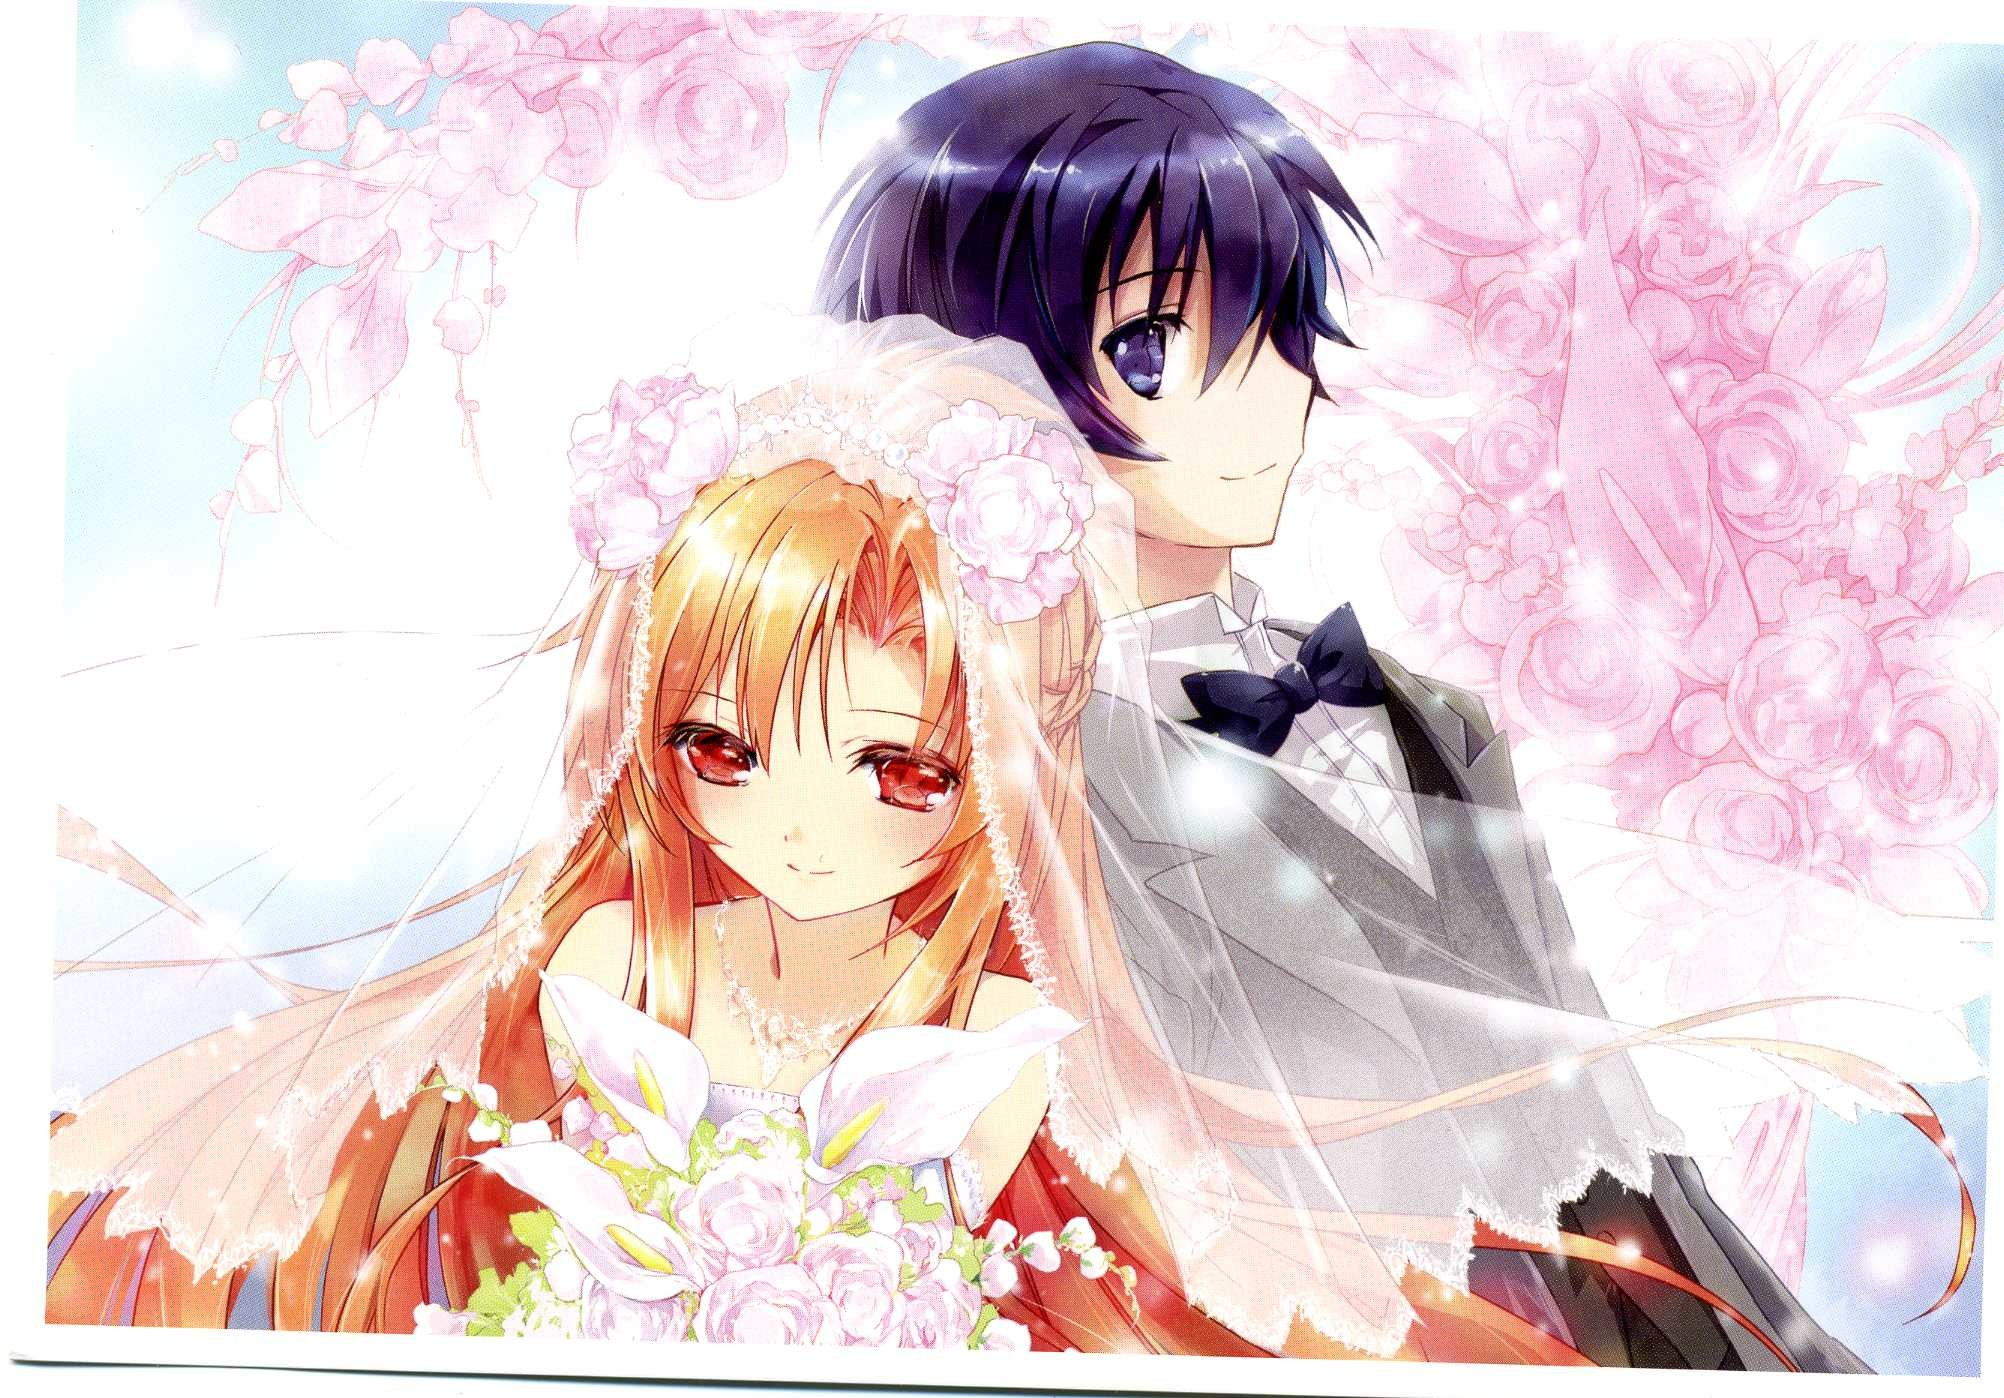 Are you looking for anime couple wallpapers or SAO wallpapers? – added by  daftiduck at Wallpaper request